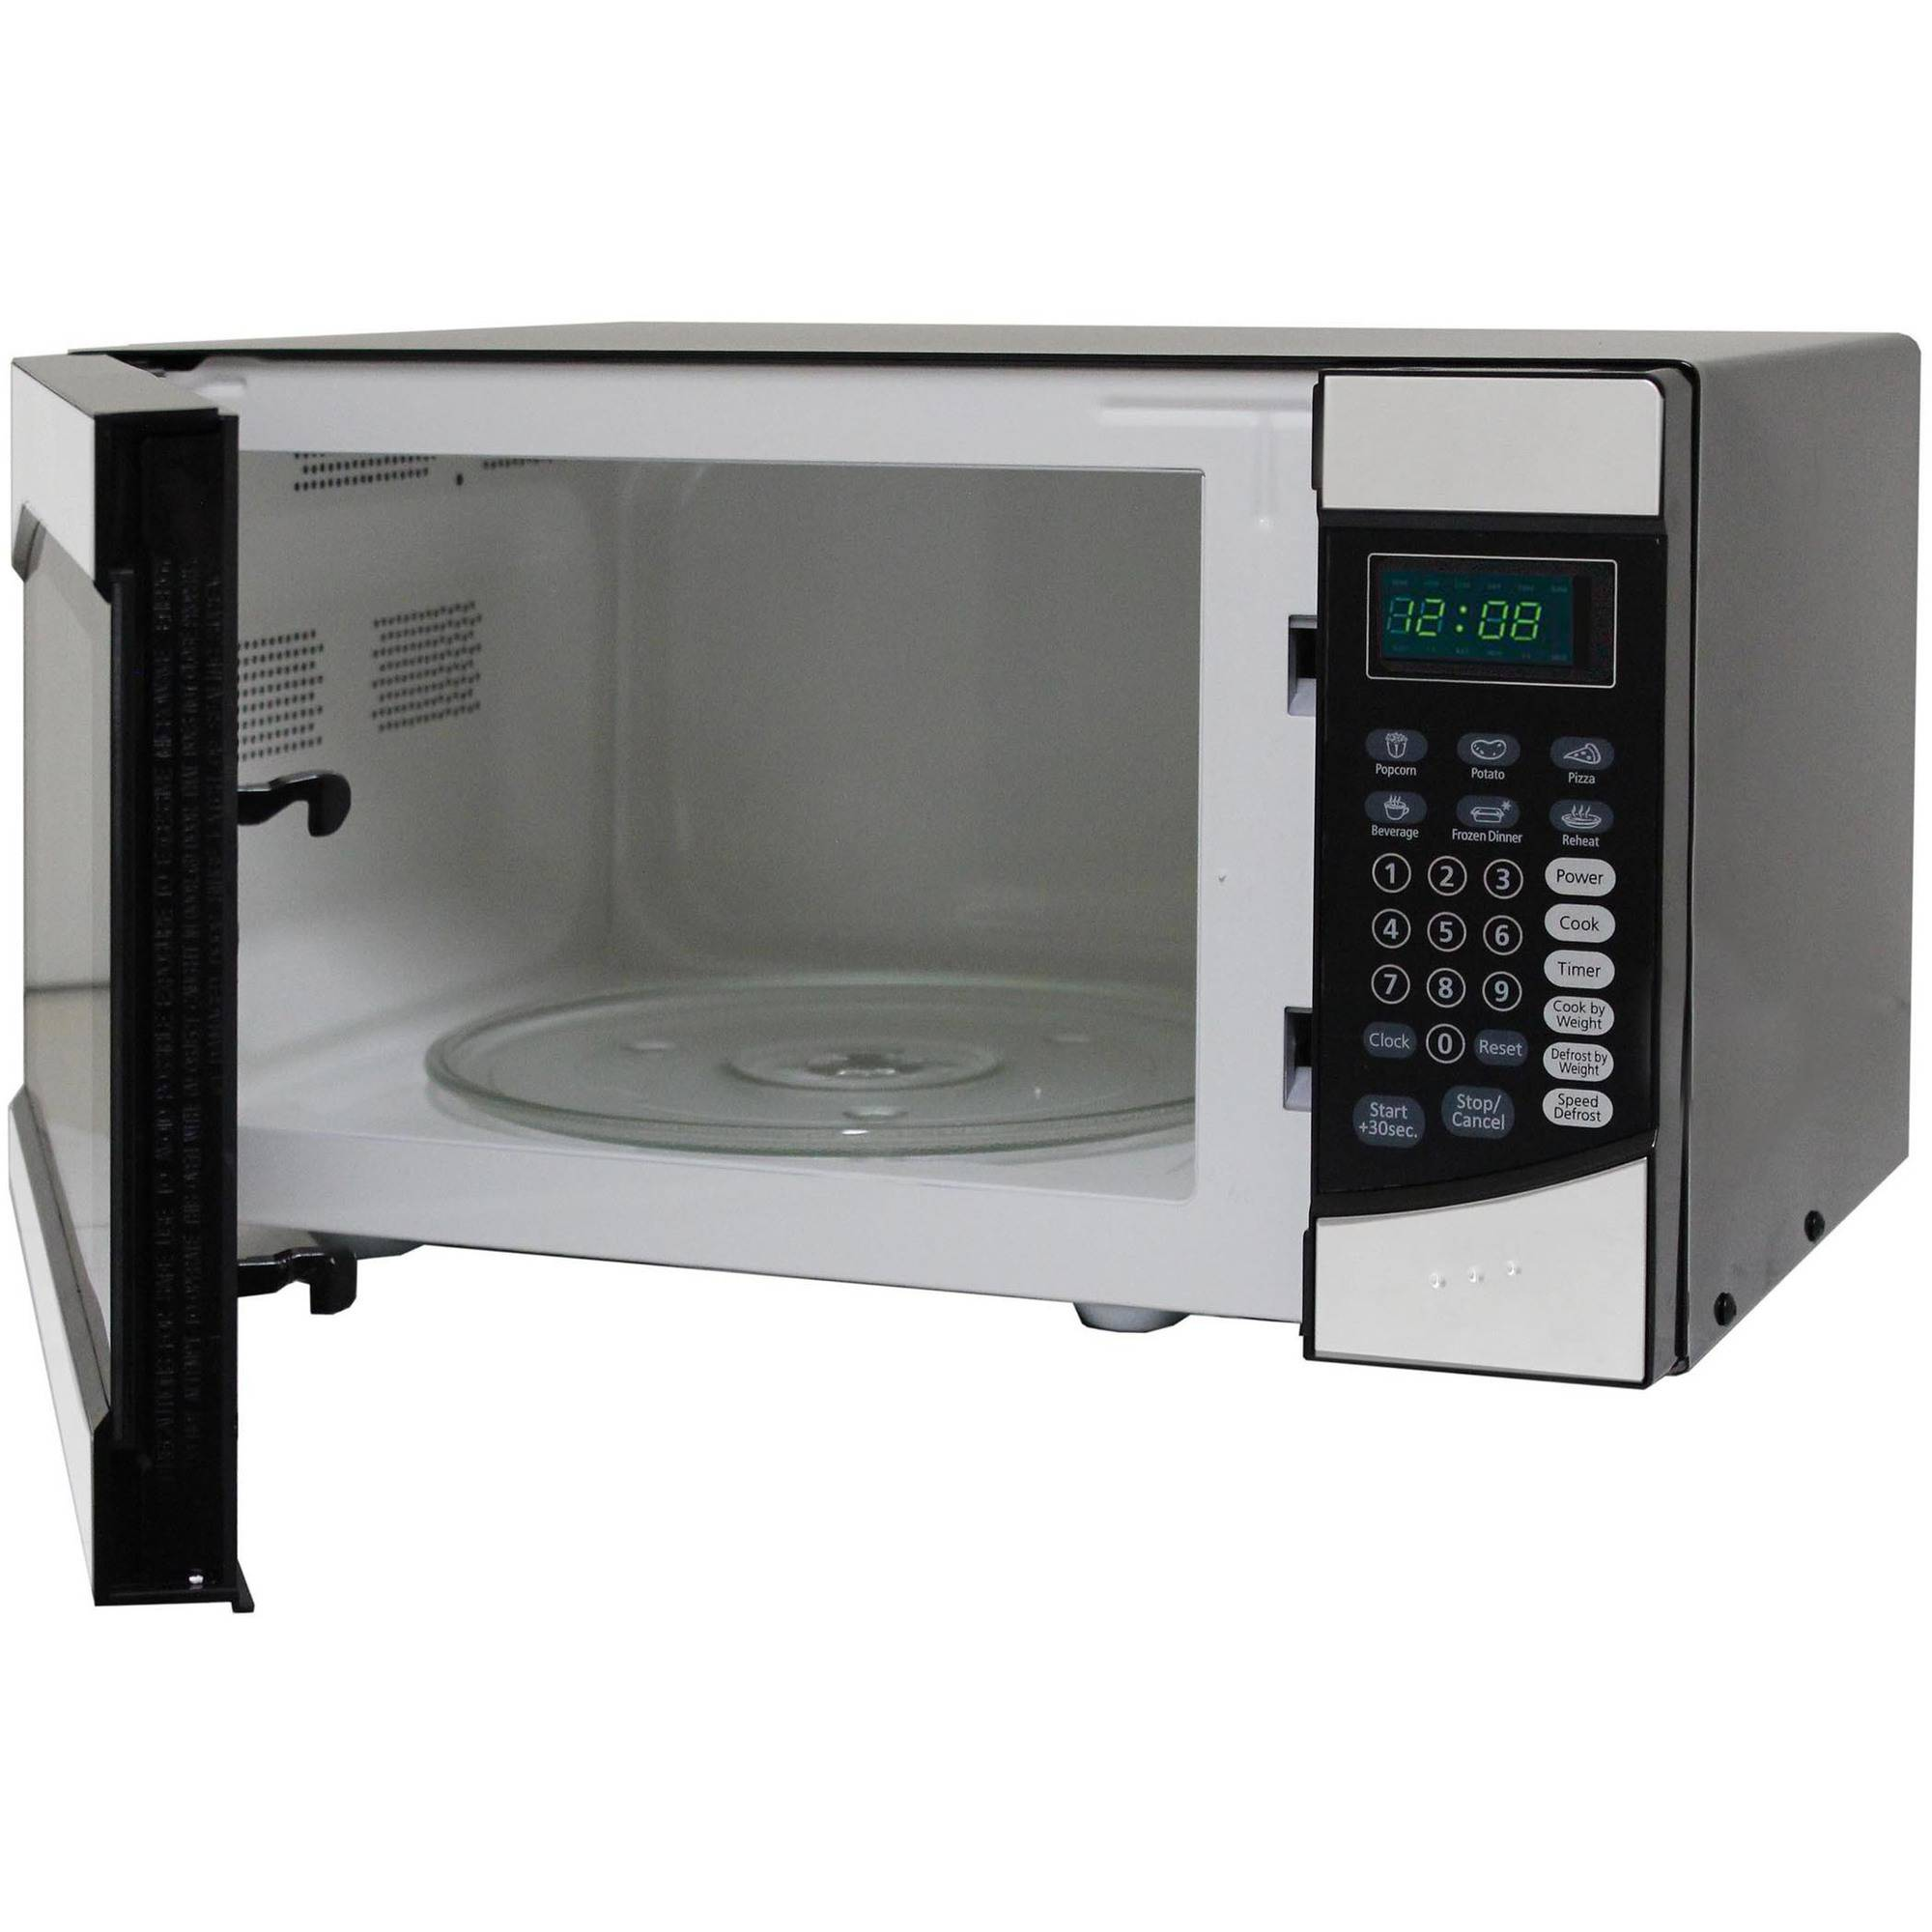 Sunbeam Stainless Steel Microwave Bestmicrowave